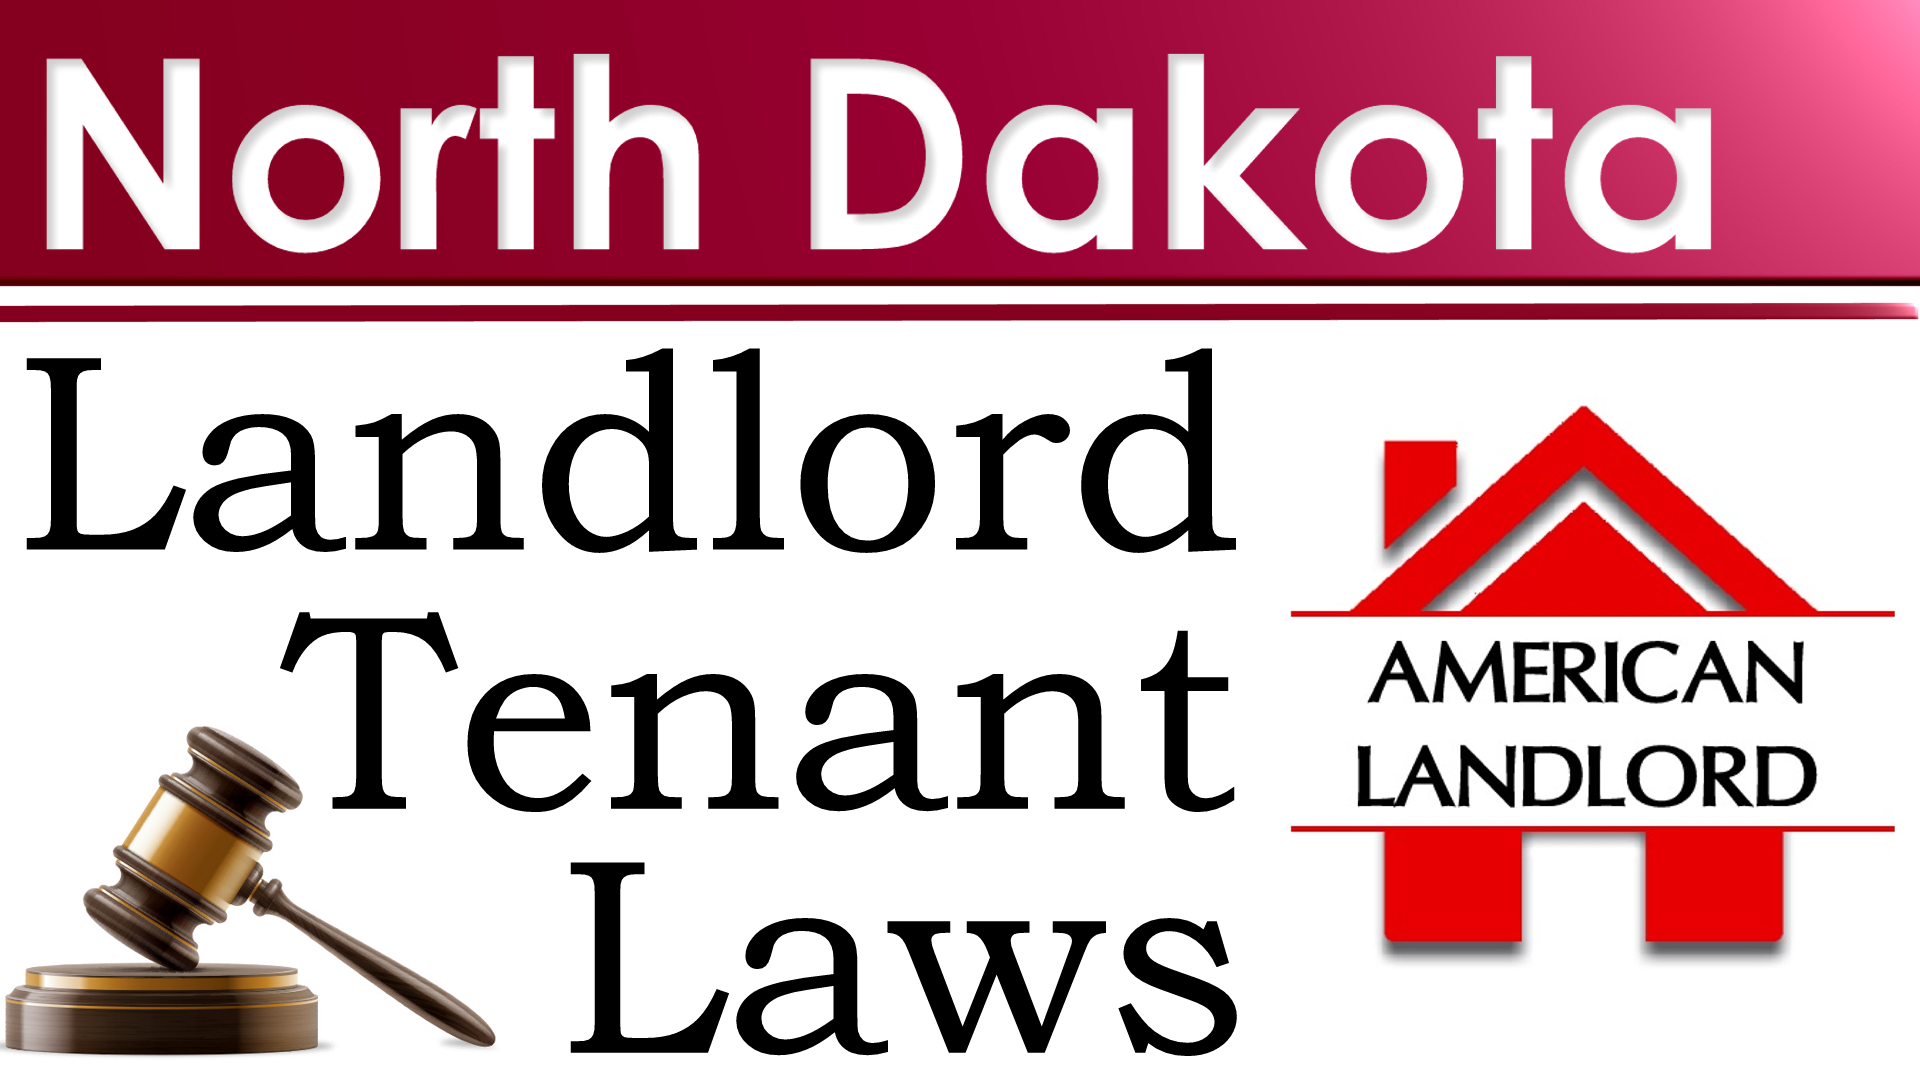 North Dakota landlord tenant law